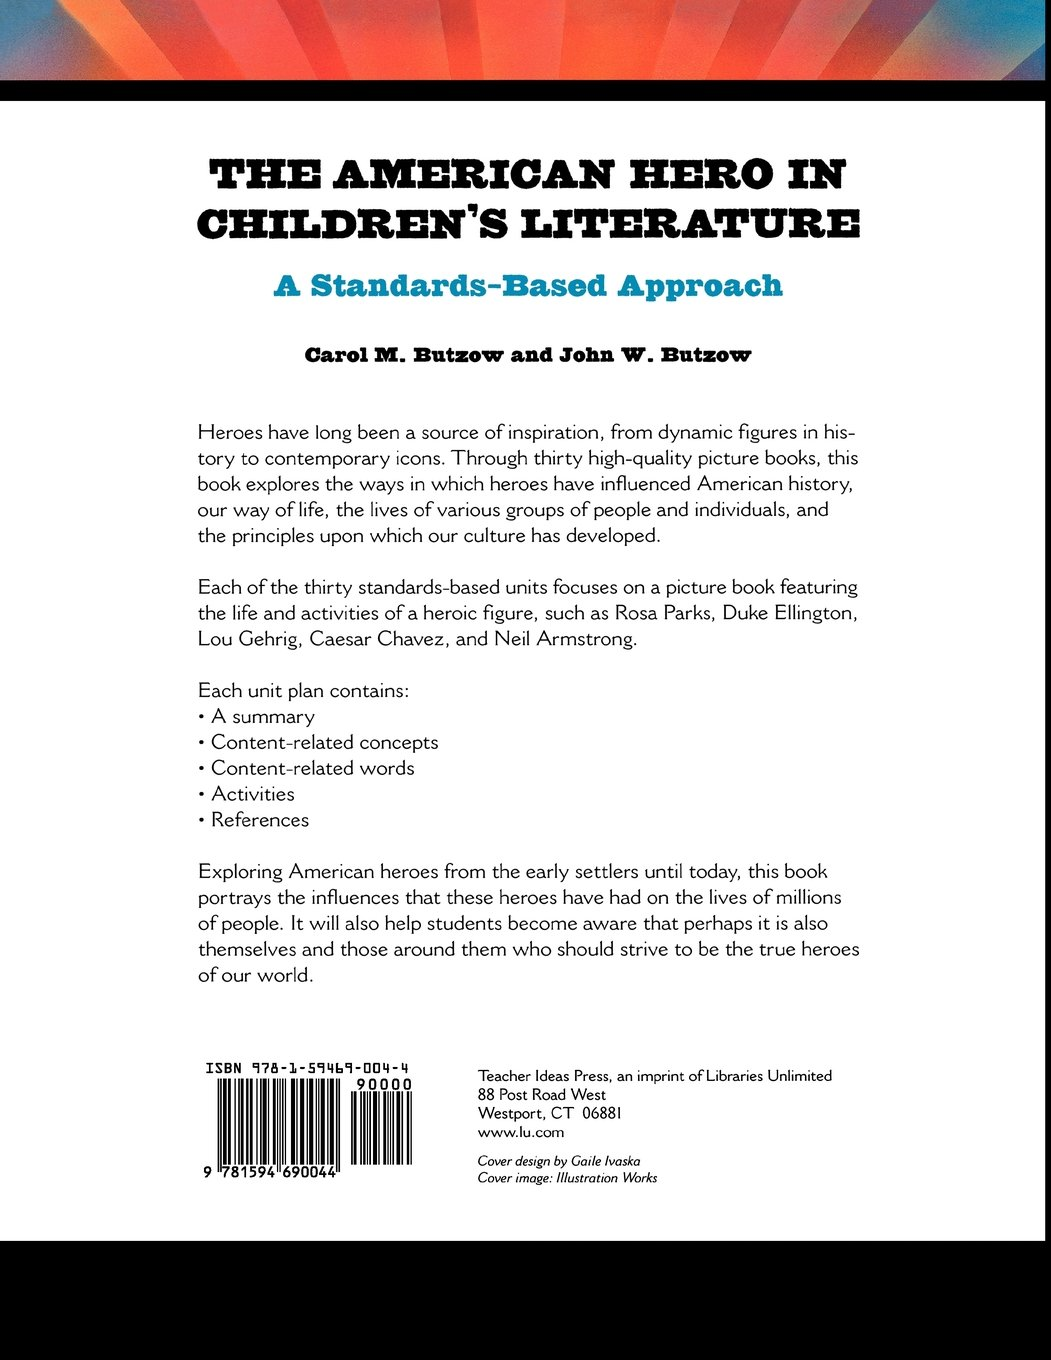 The American Hero in Childrens Literature: A Standards-Based Approach